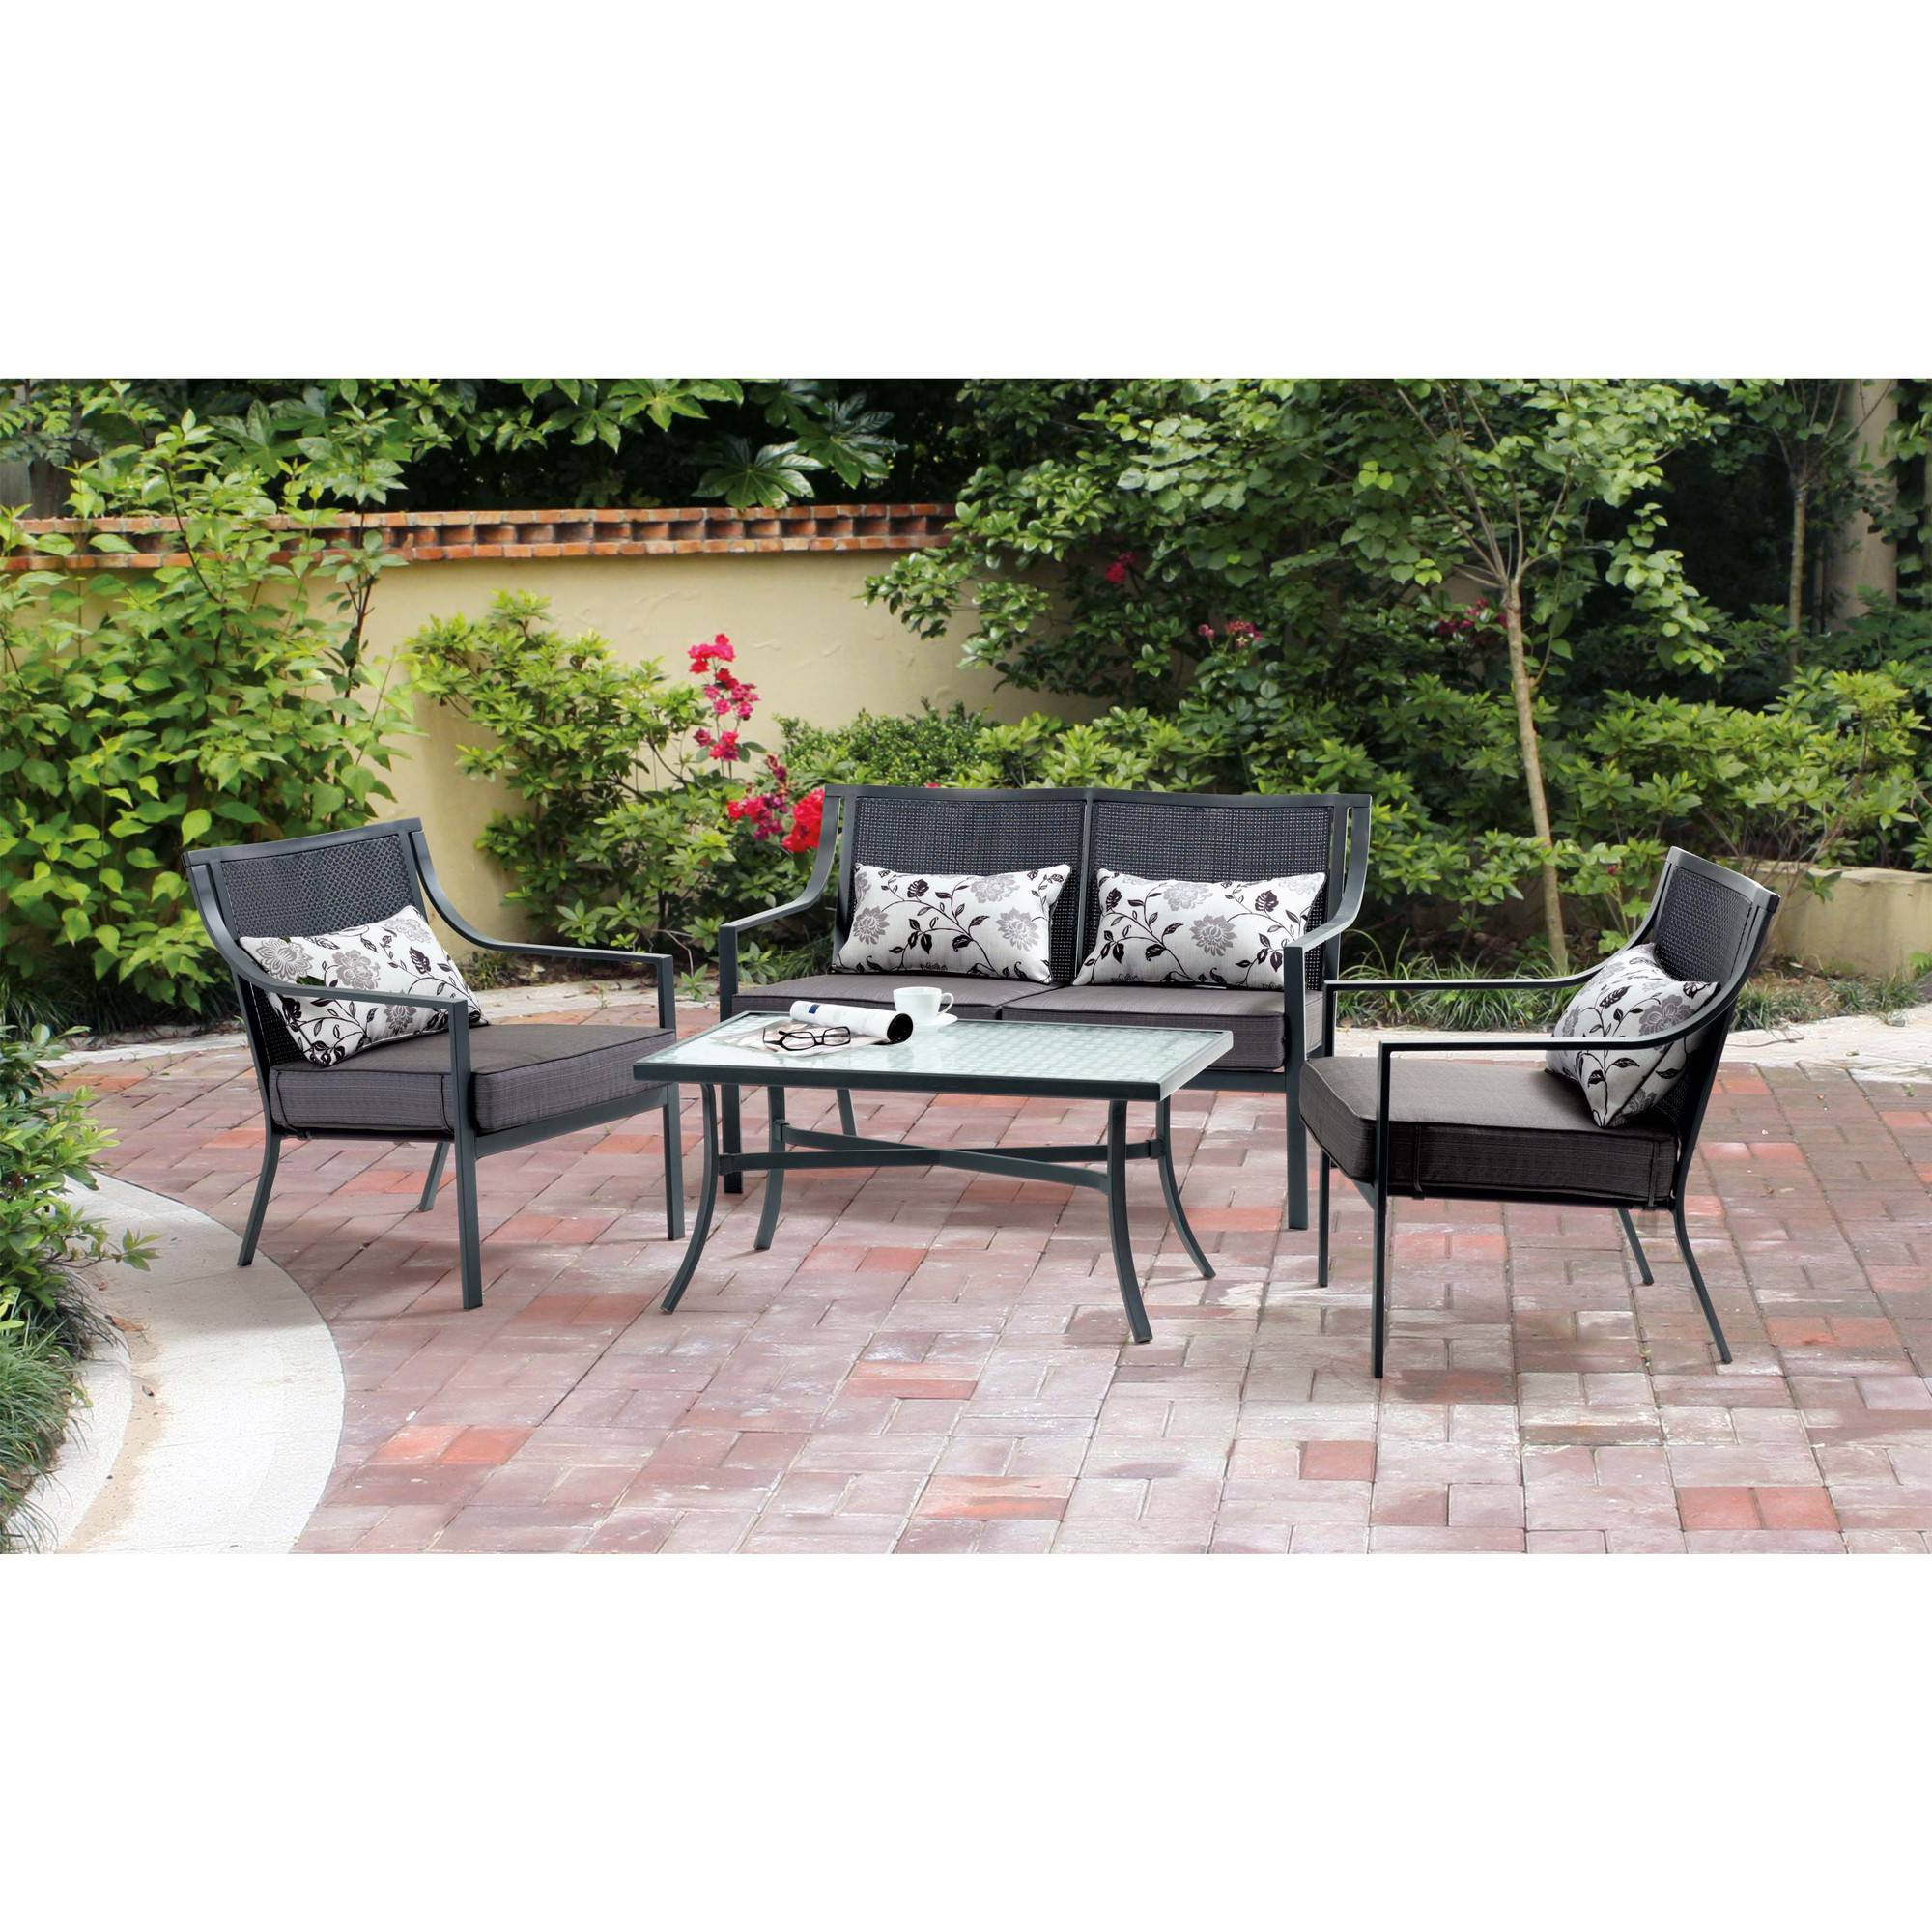 Mainstays Alexandra Square 4 Piece Patio Conversation Set Grey